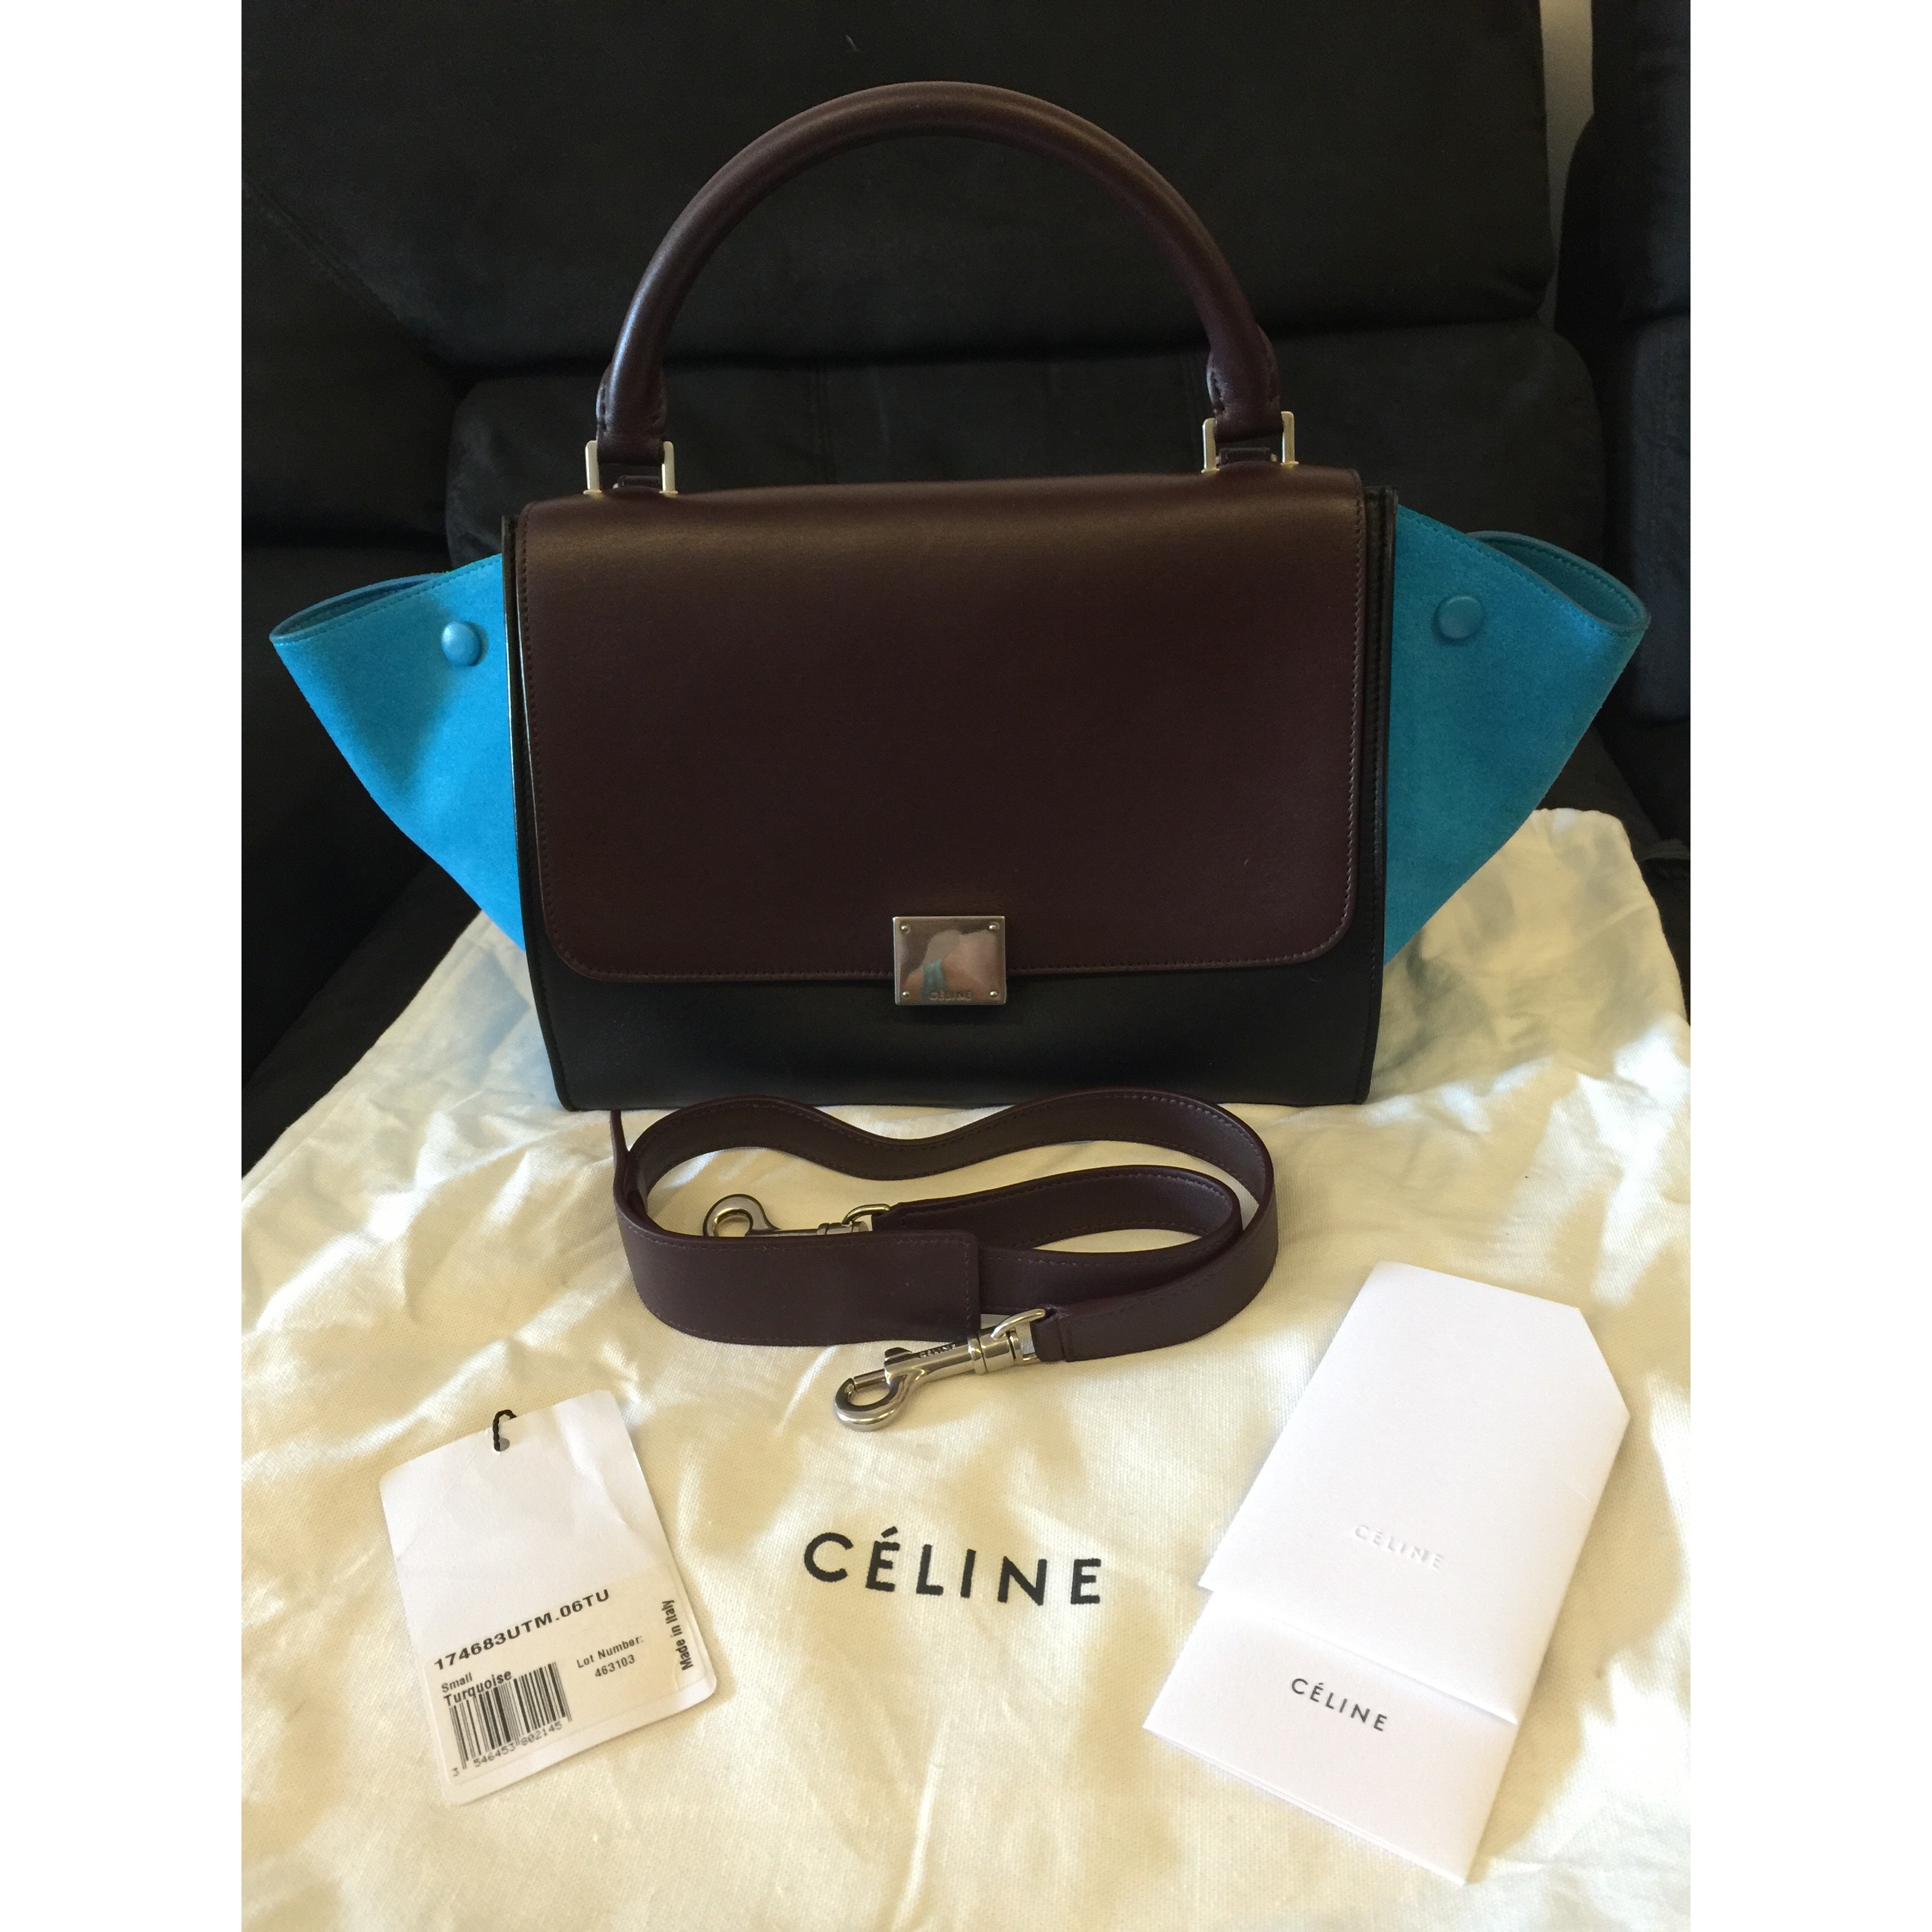 51003f2abf Celine Tri-color Trapeze Bag - small Conditions   9.5 10 like new  Color Material   as shown in pic calfskin Remark- no scratches